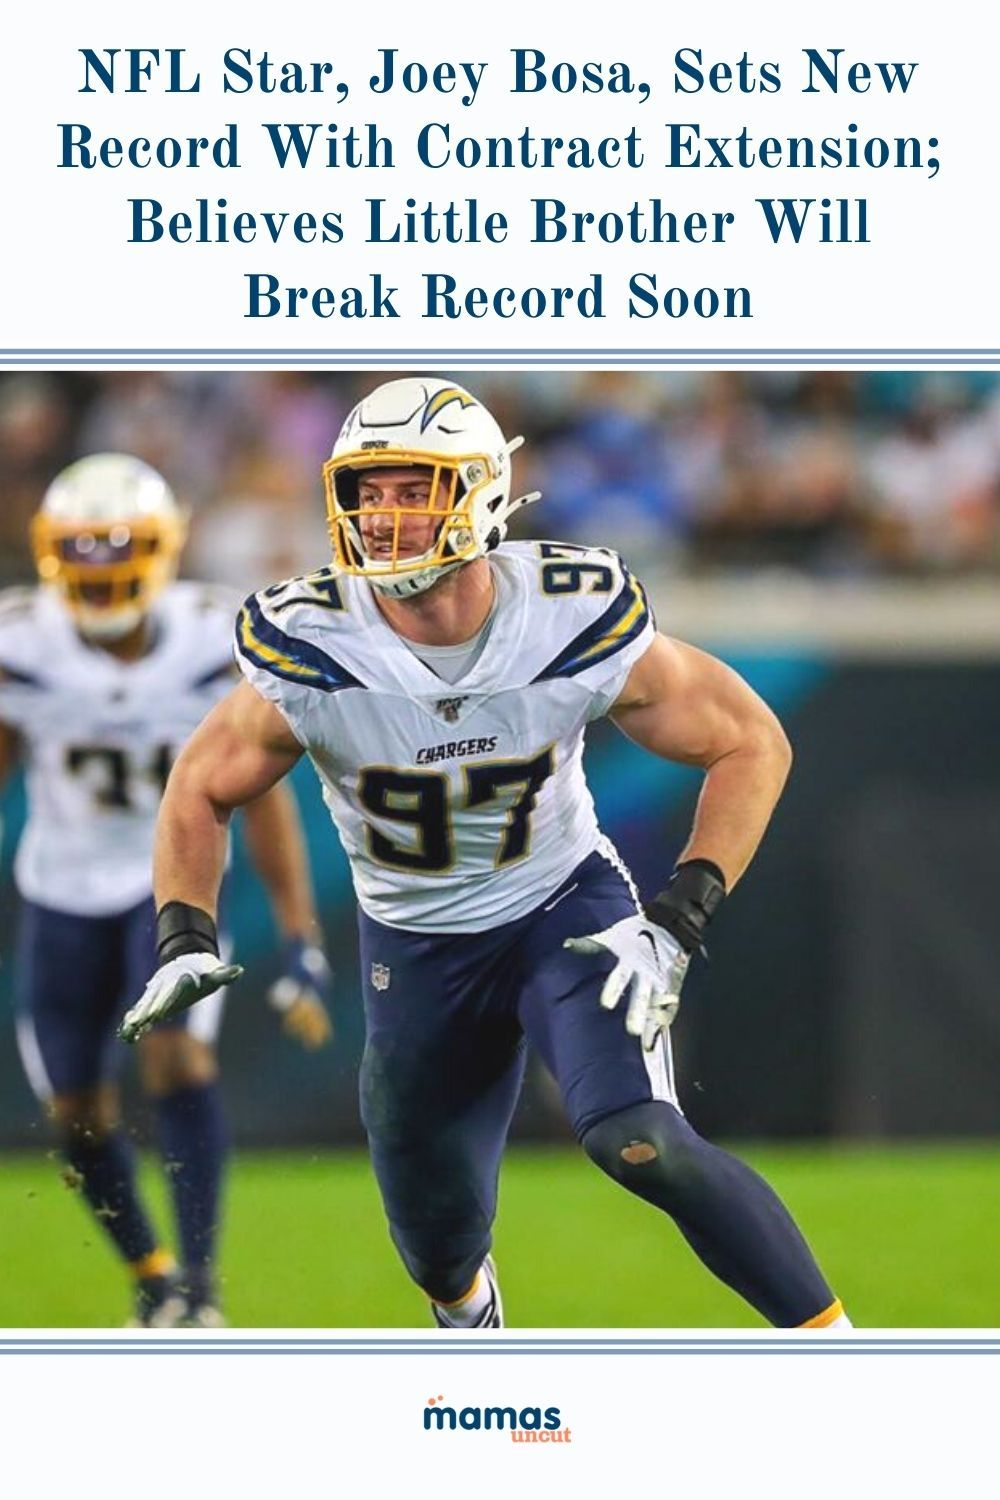 Nfl Star Joey Bosa Sets New Record With Contract Extension Believes Little Brother Will Break Record Soon In 2020 Nfl Melvin Ingram Records